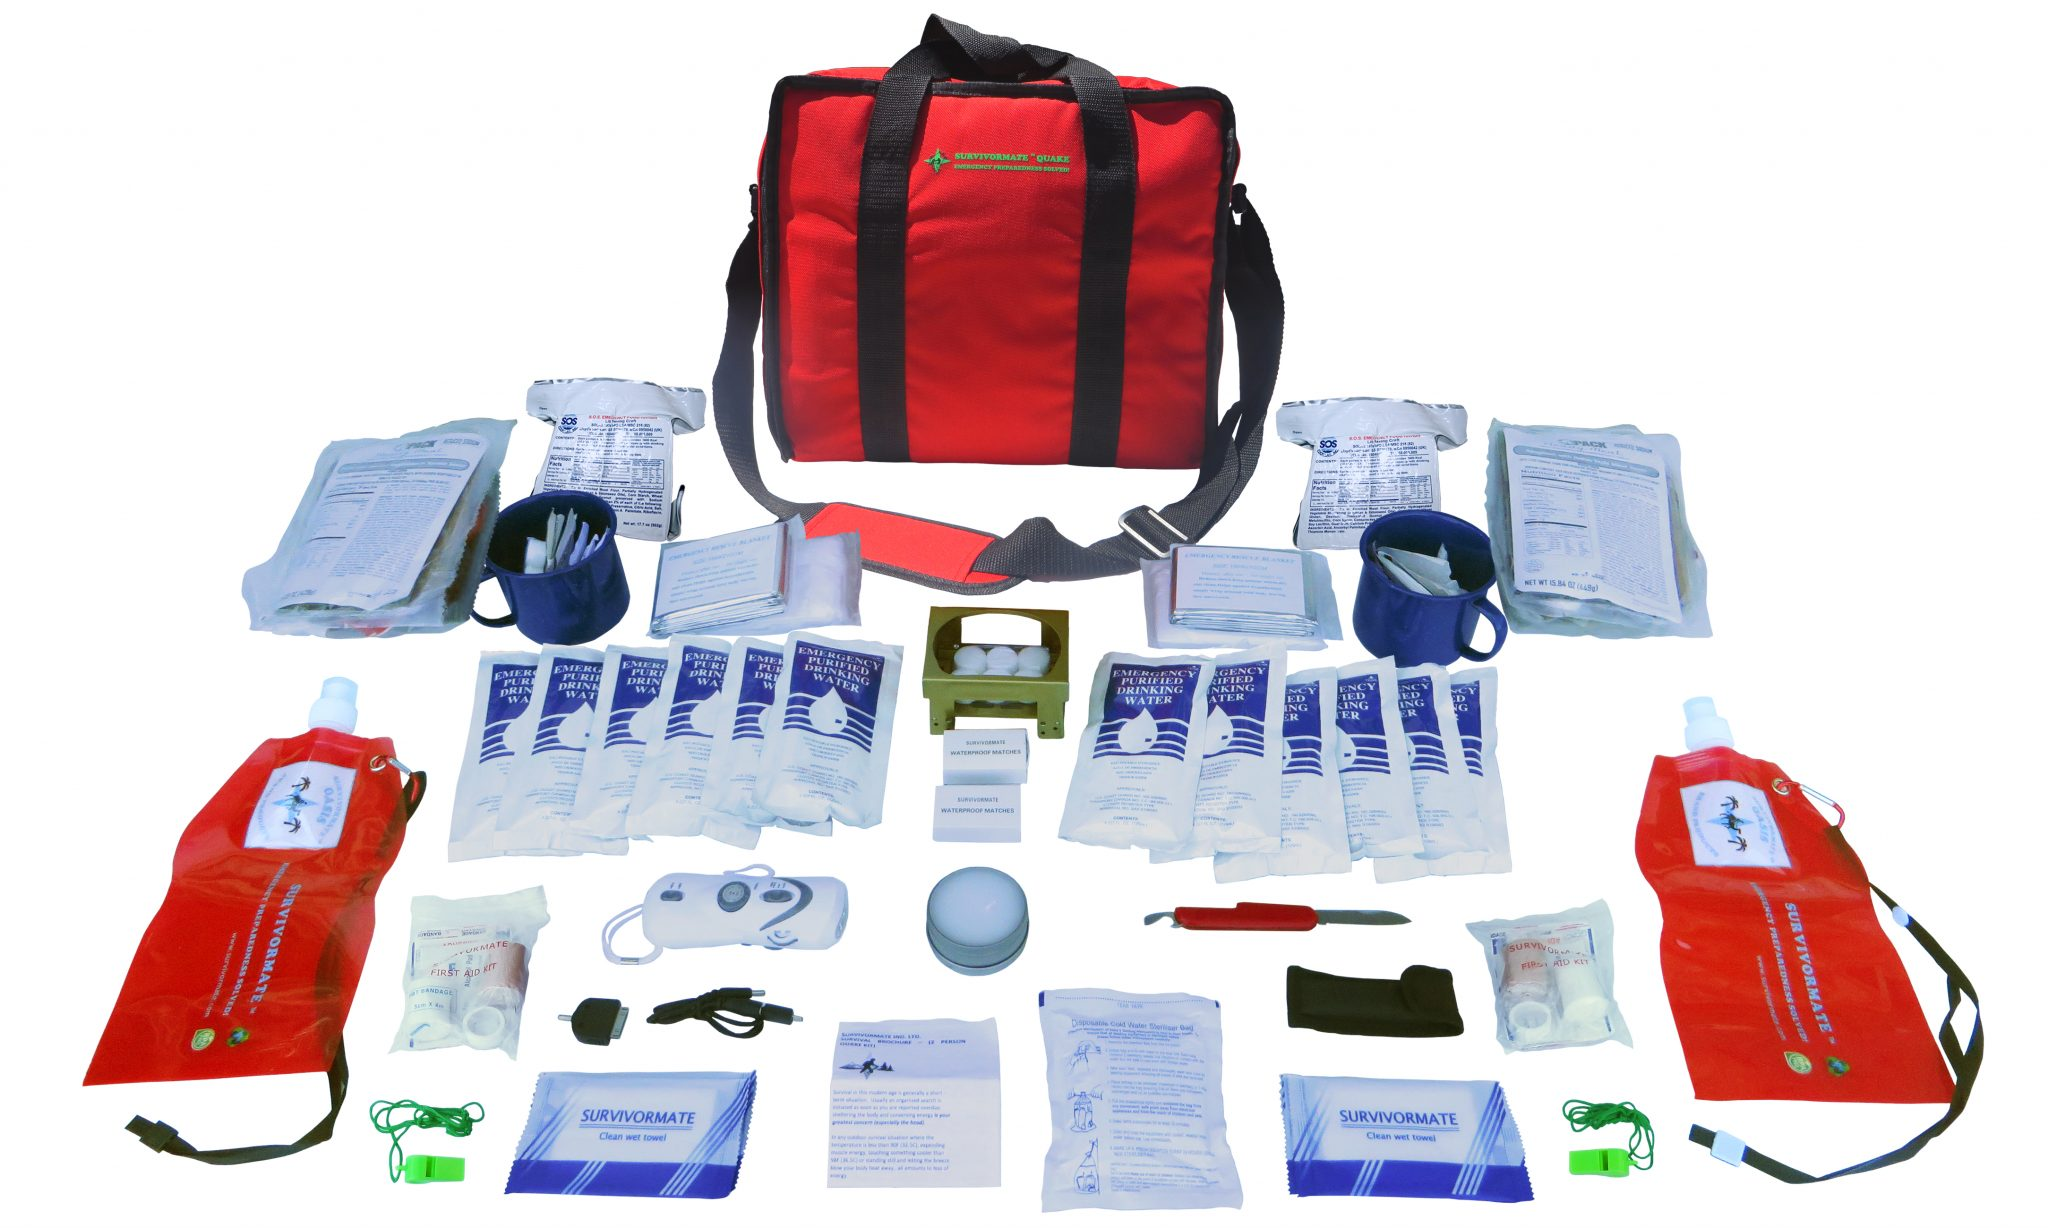 Survivormate Quake 4-Person Deluxe Kit